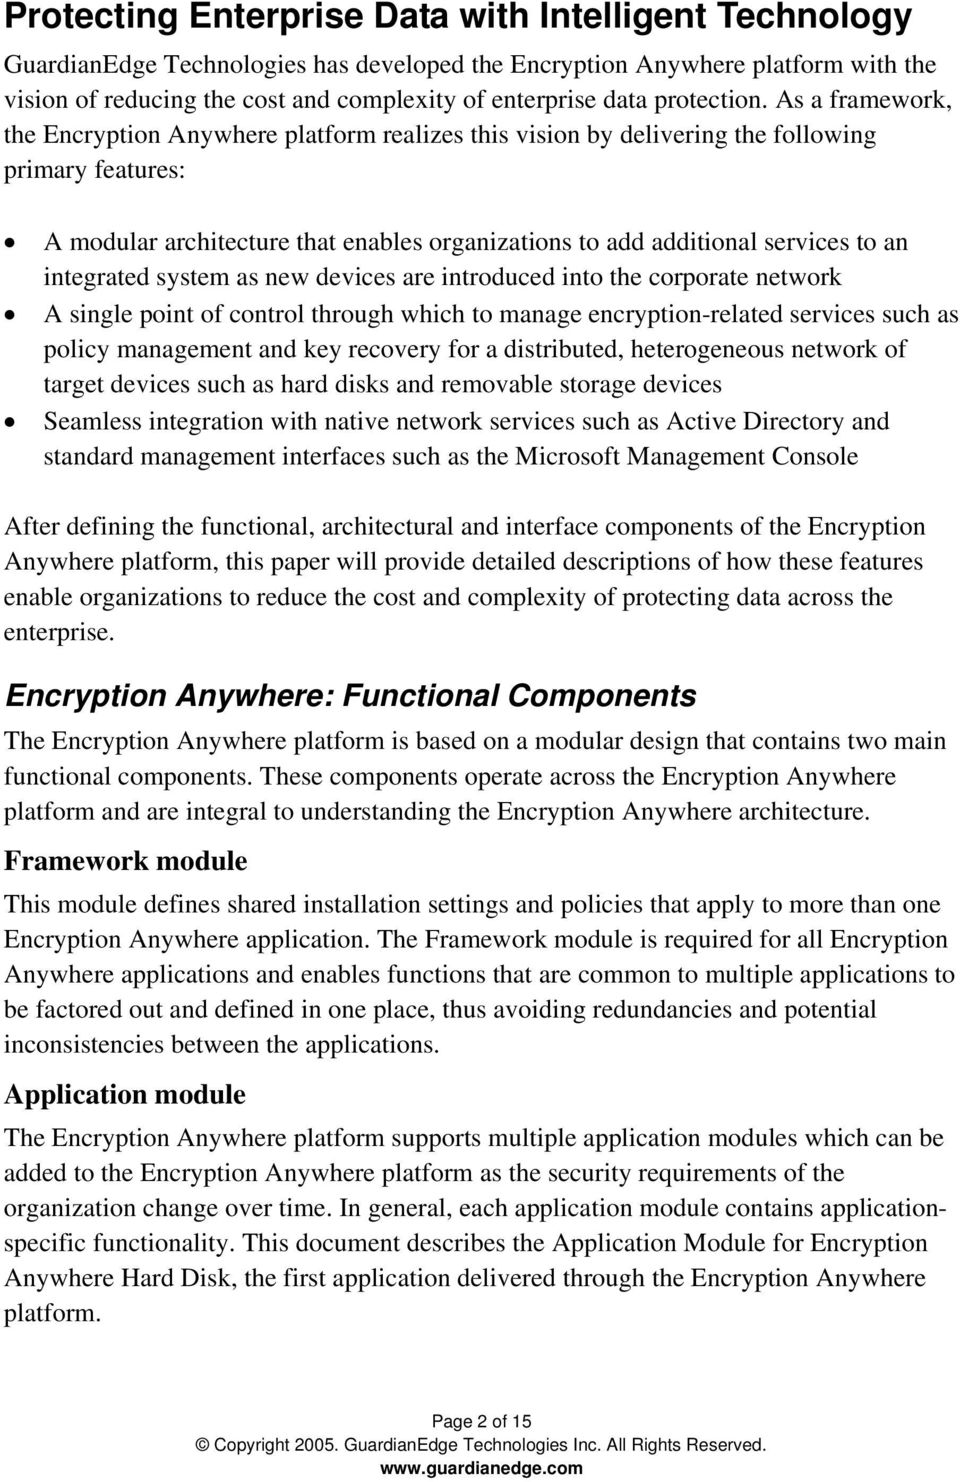 As a framework, the Encryption Anywhere platform realizes this vision by delivering the following primary features: A modular architecture that enables organizations to add additional services to an